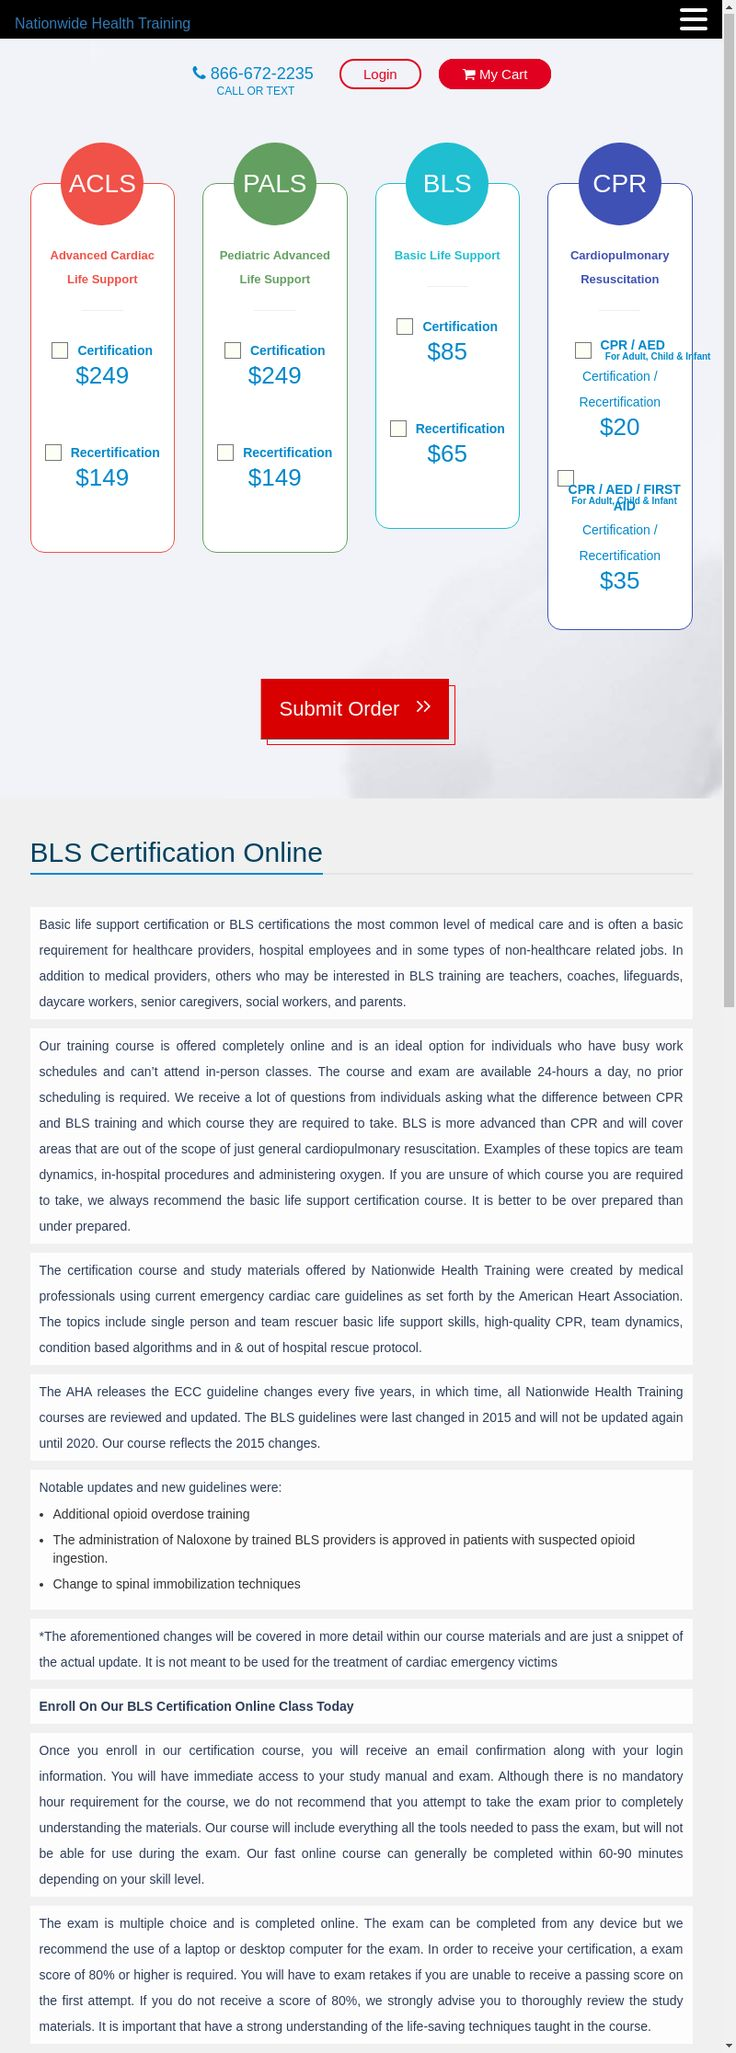 Get BLS Certification Online or renew your BLS the easy